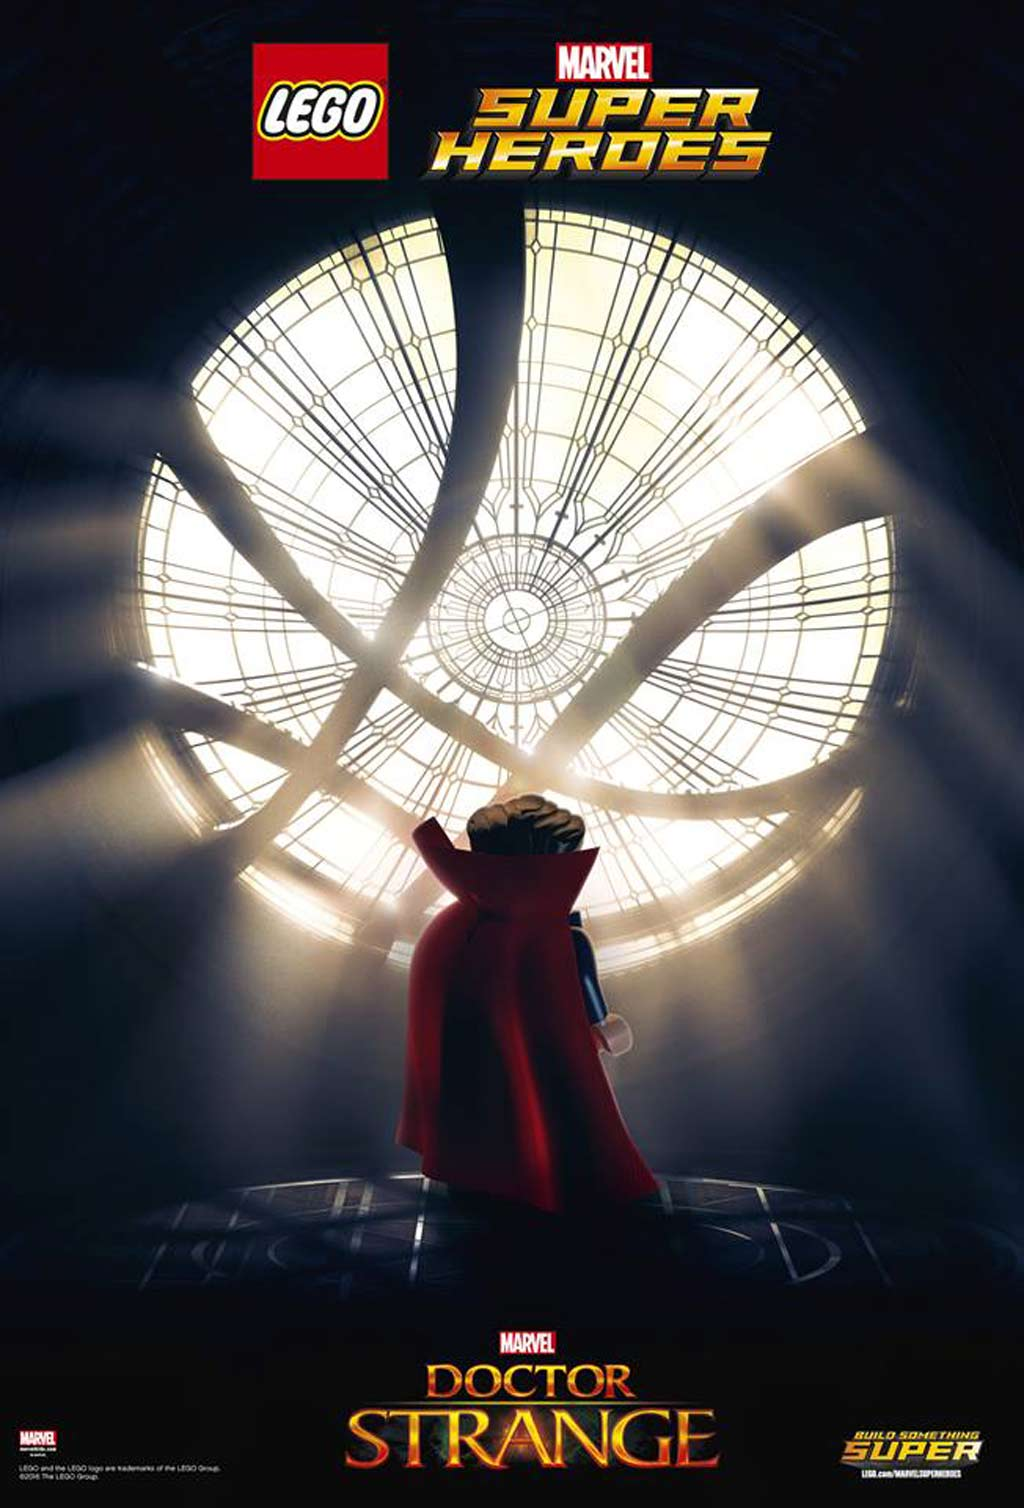 LEGO Marvel Super Heroes Doctor Strange Filmposter | © LEGO Group